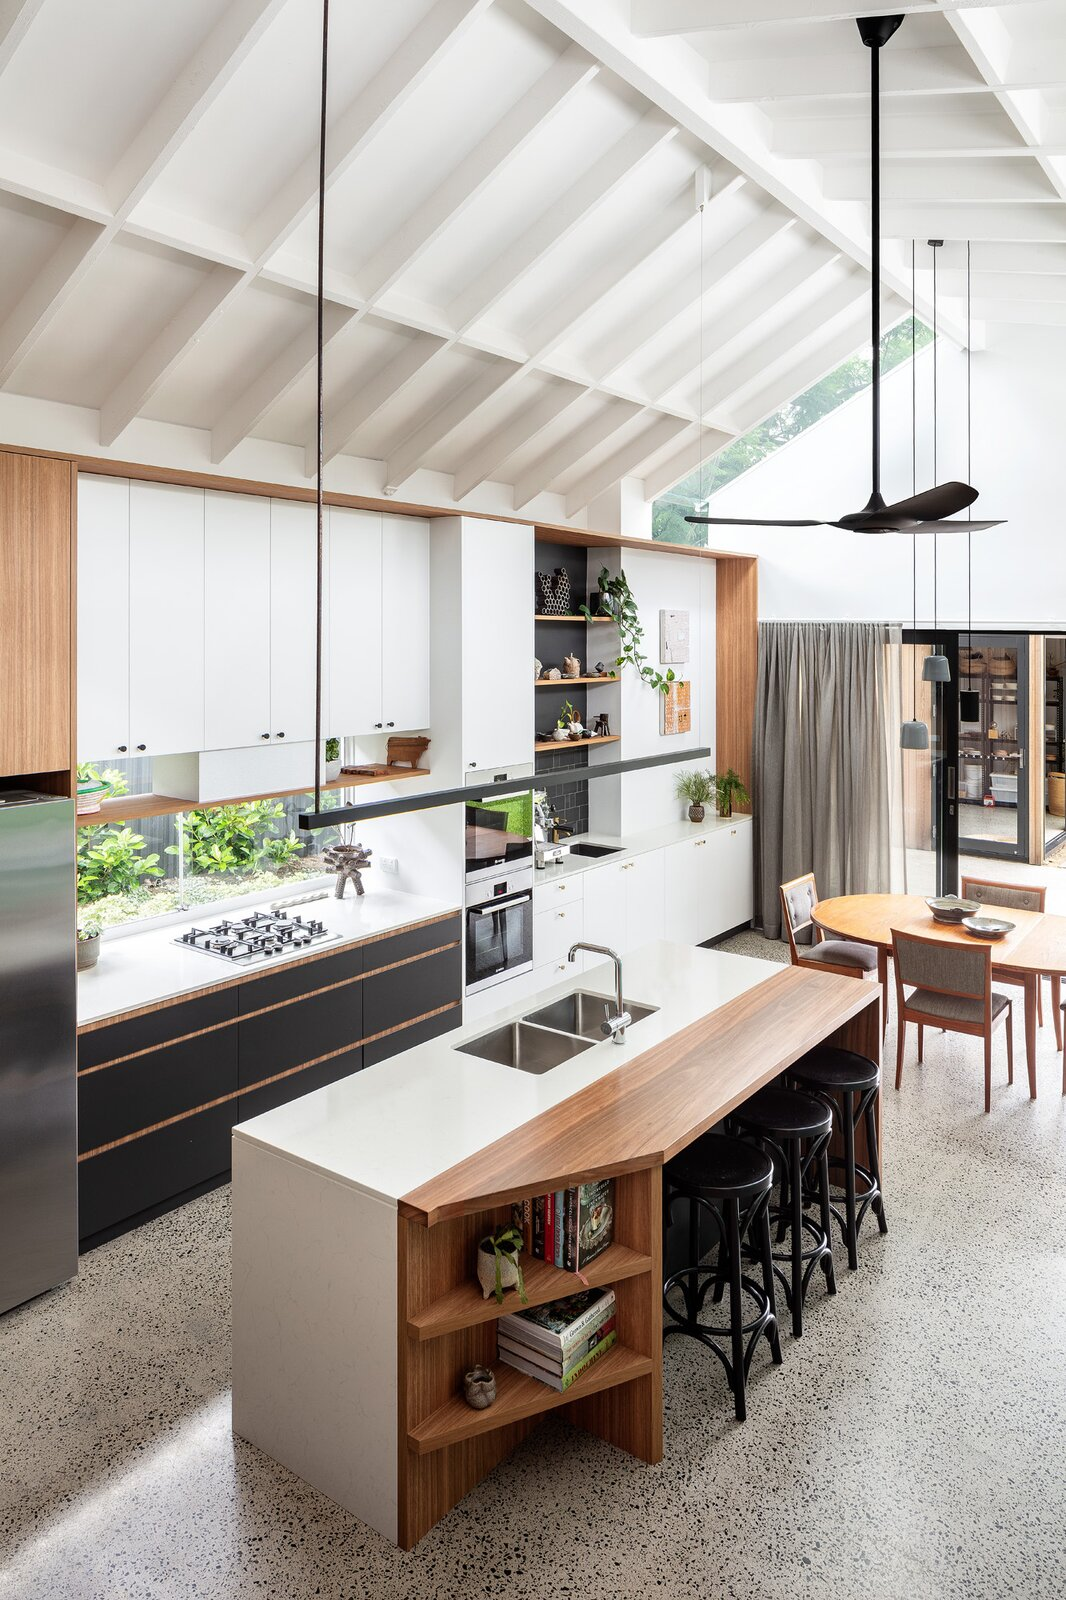 Mark Szczerbicki Design Studio Collectors' Cottage kitchen